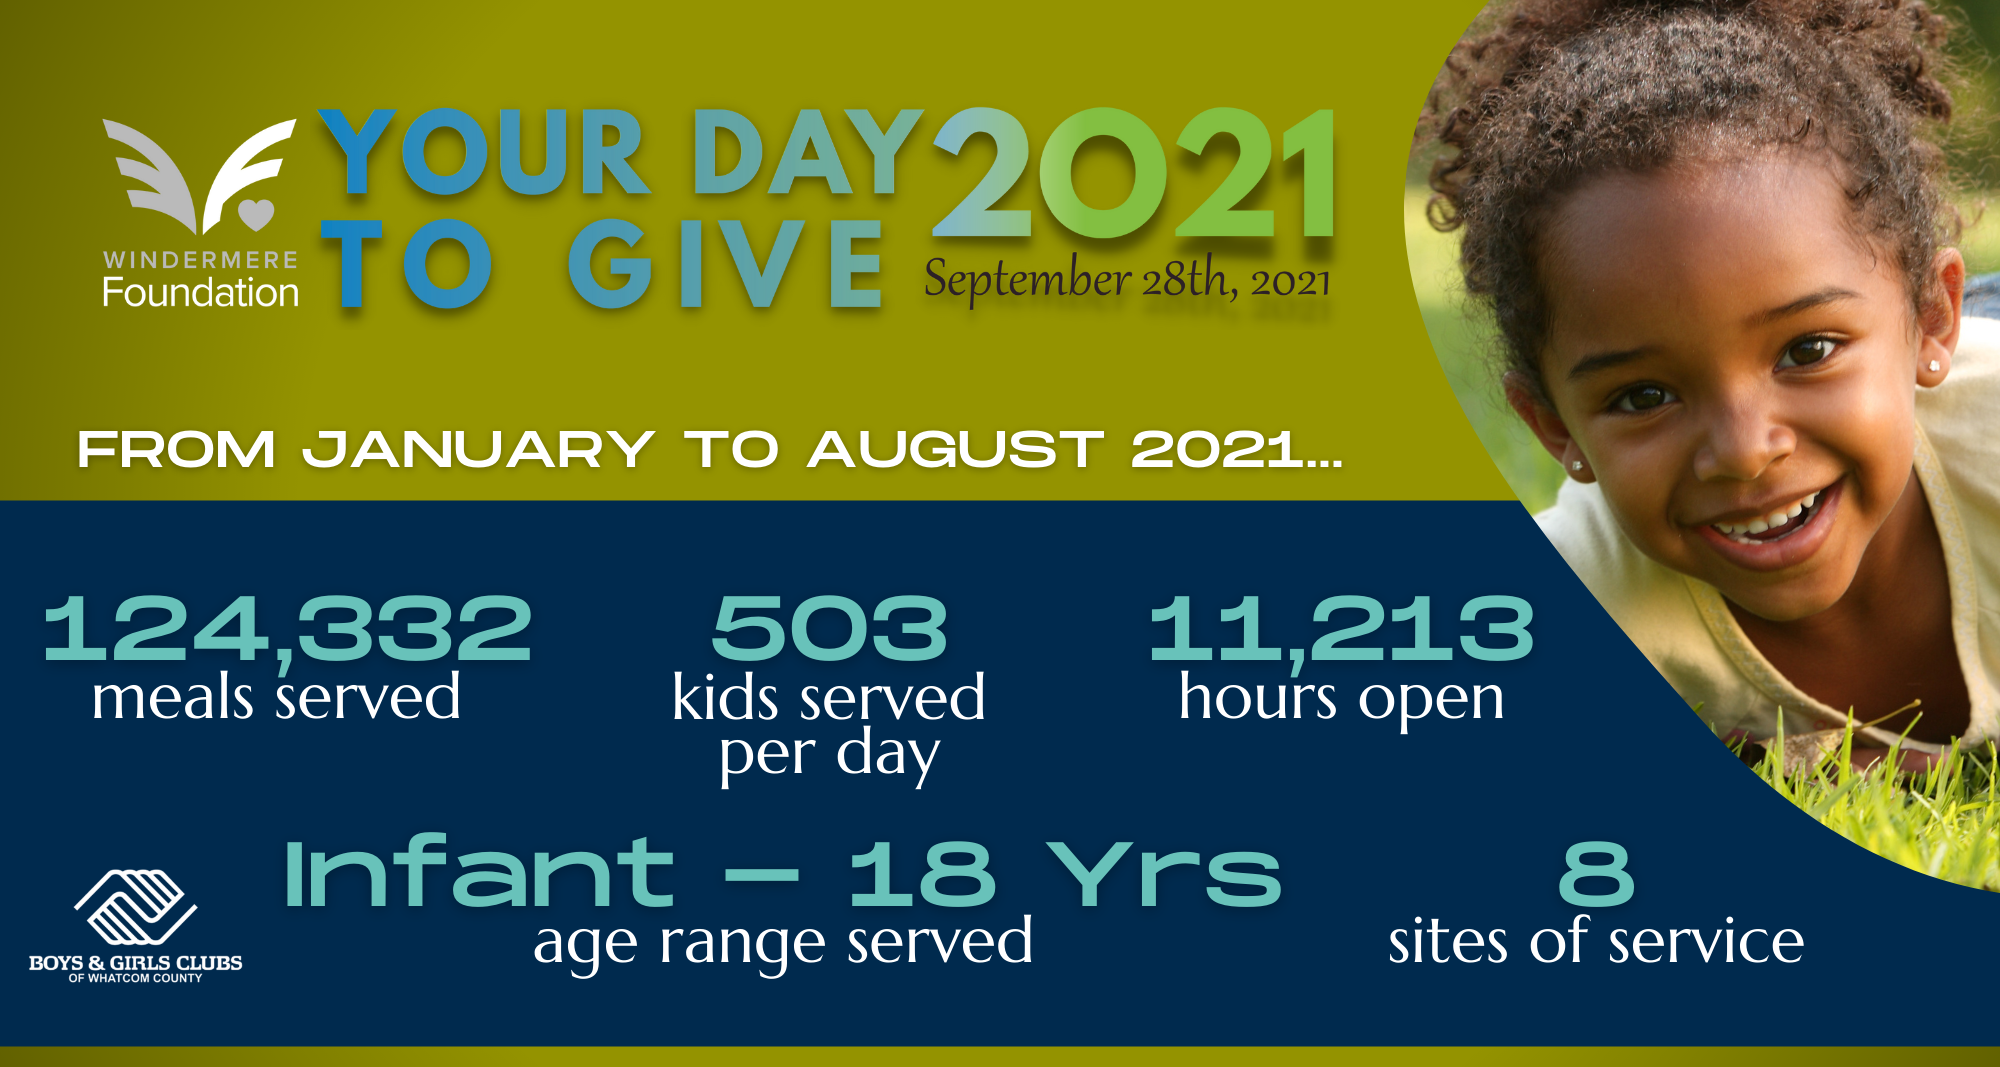 Day of Giving 2021